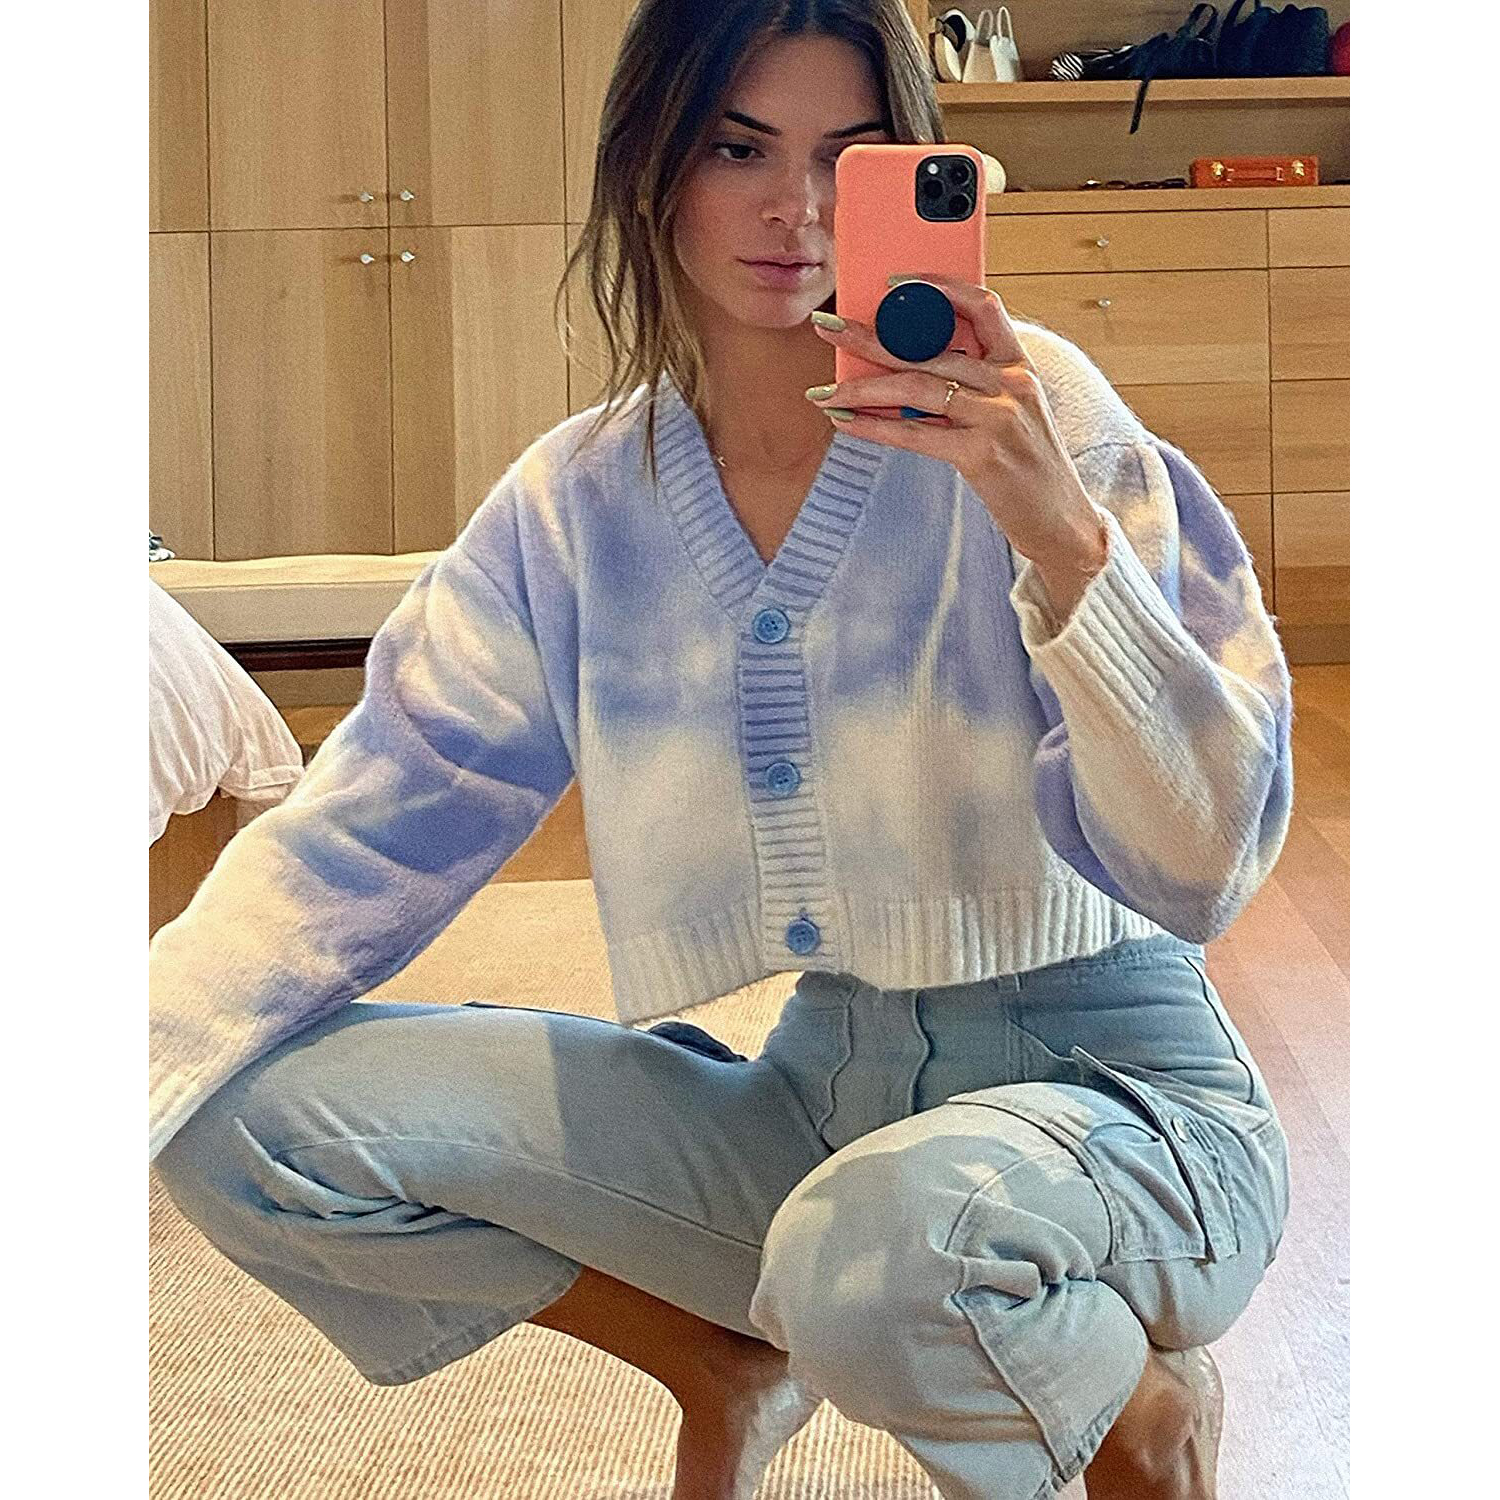 kendall kylie jenner amazon the drop Cropped Tie-Dye Cardigan